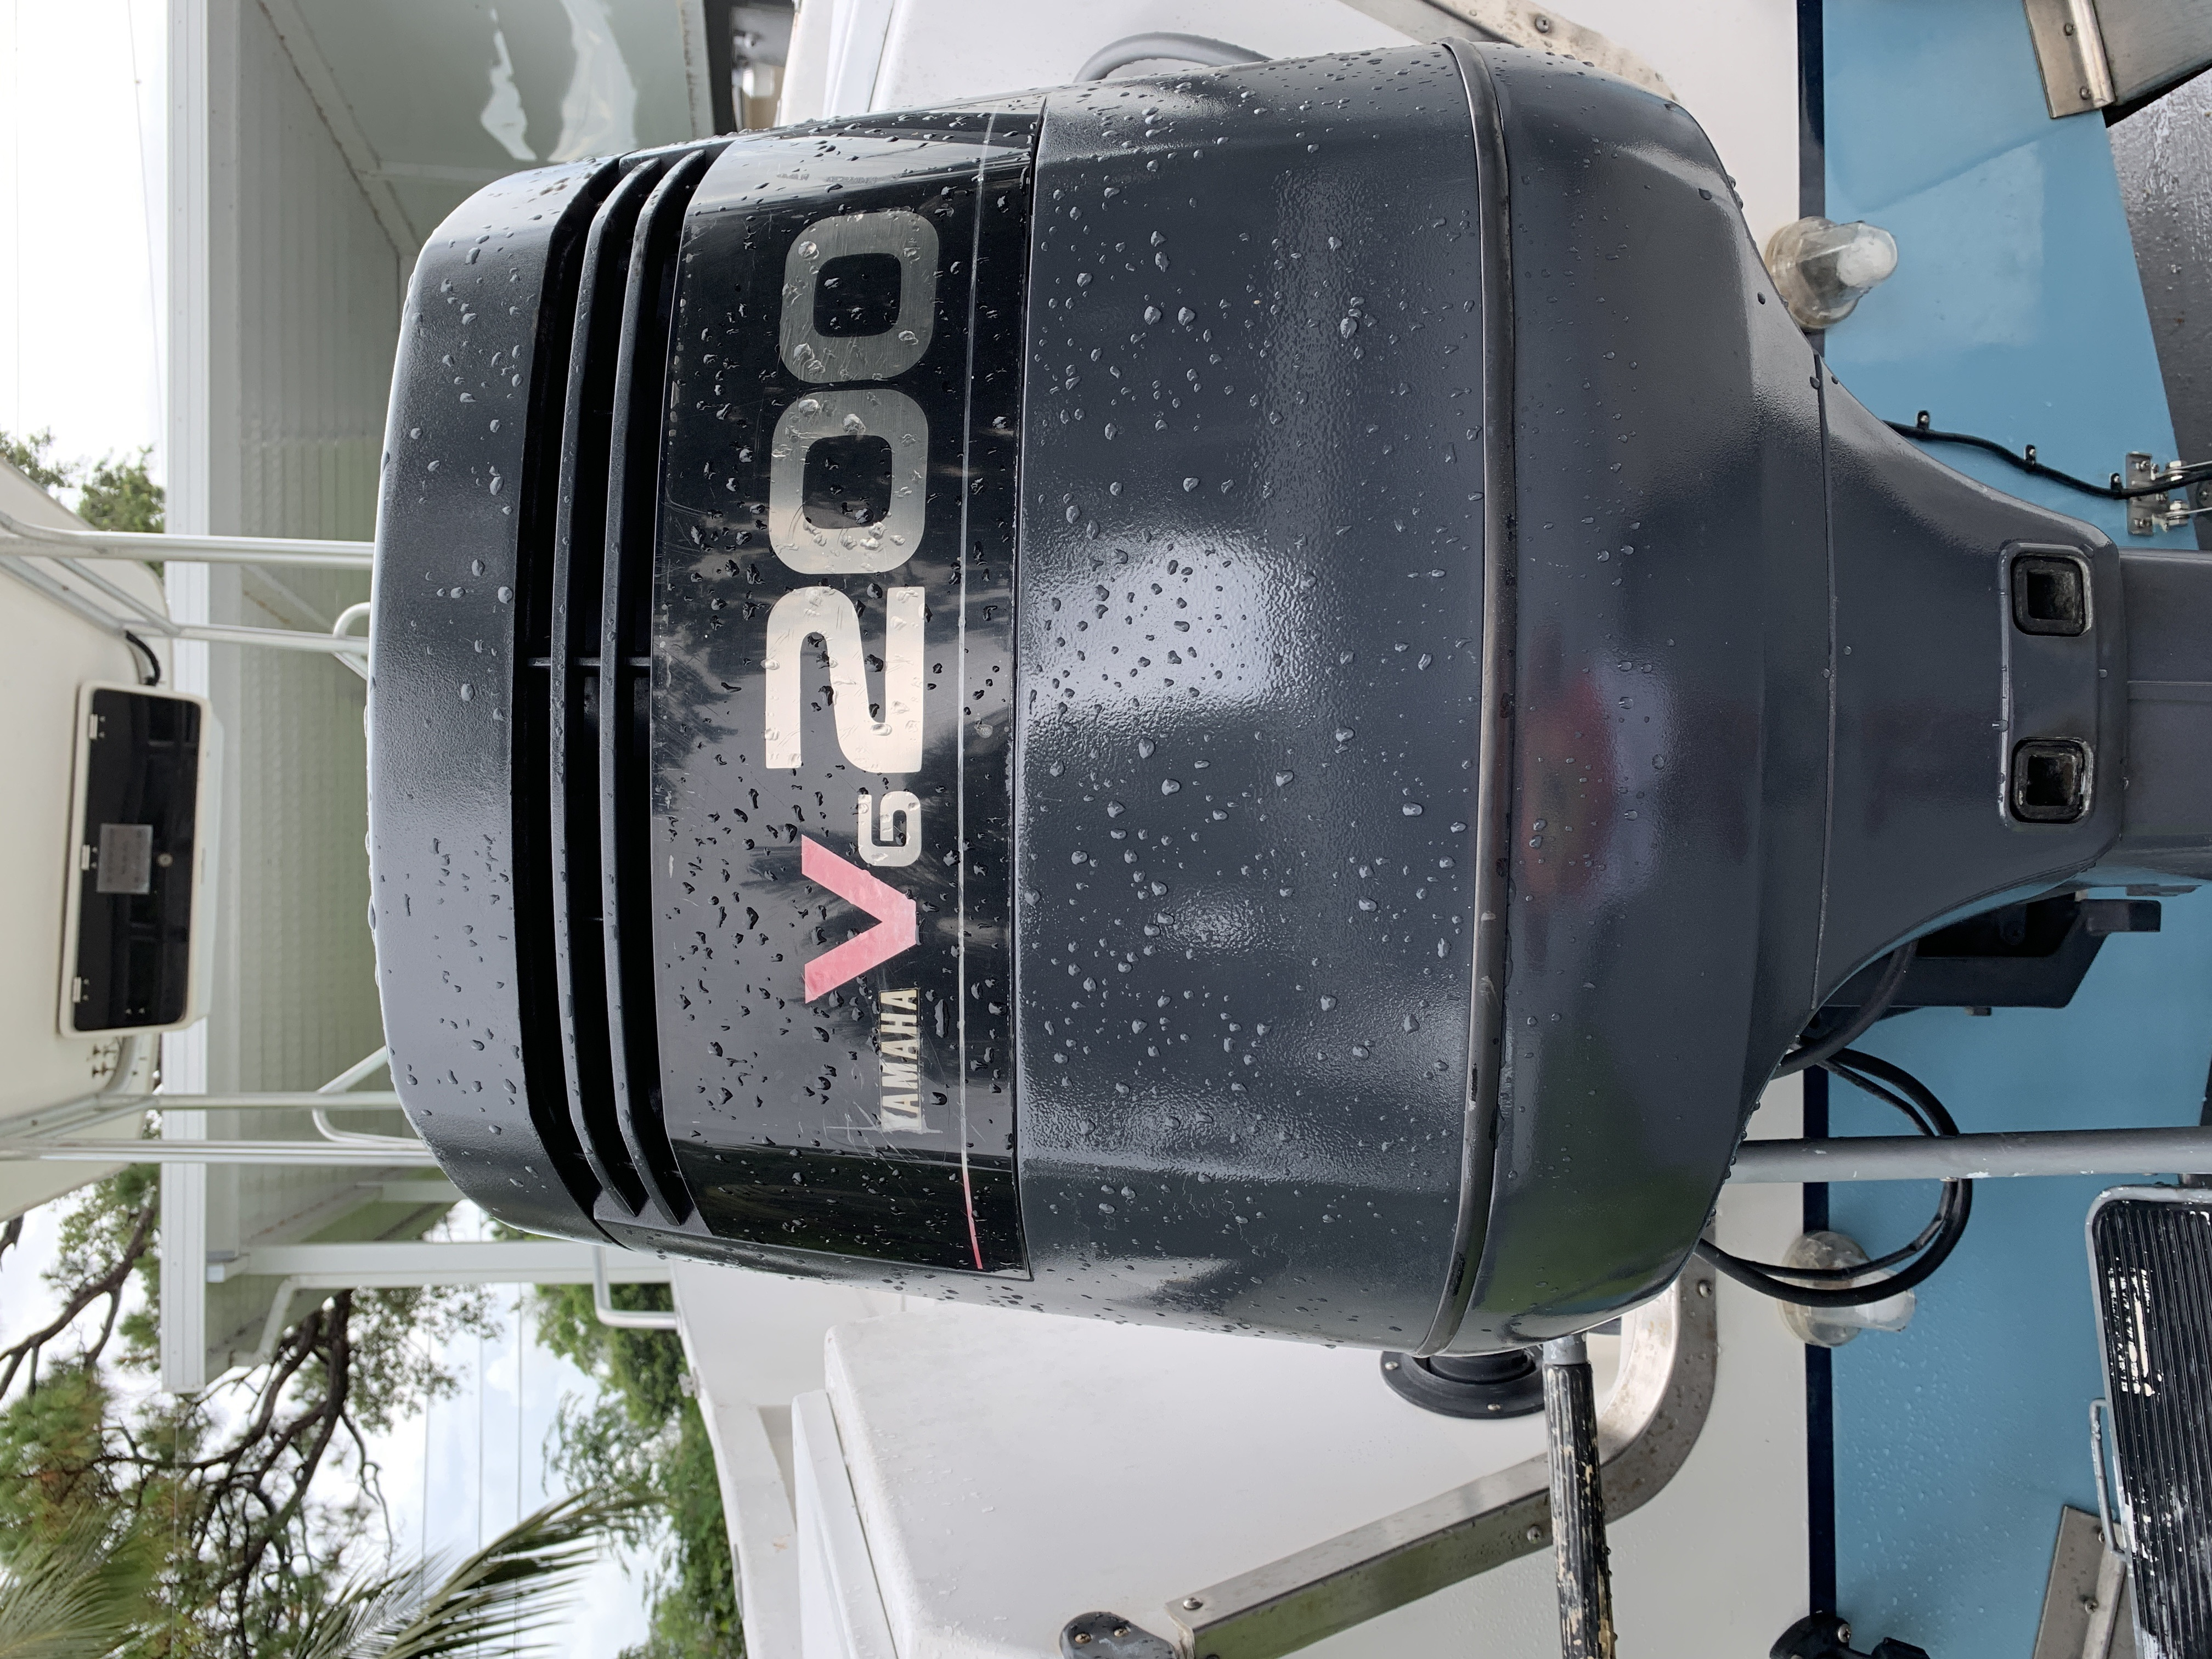 Looking to find out some questions about my Yamaha outboard